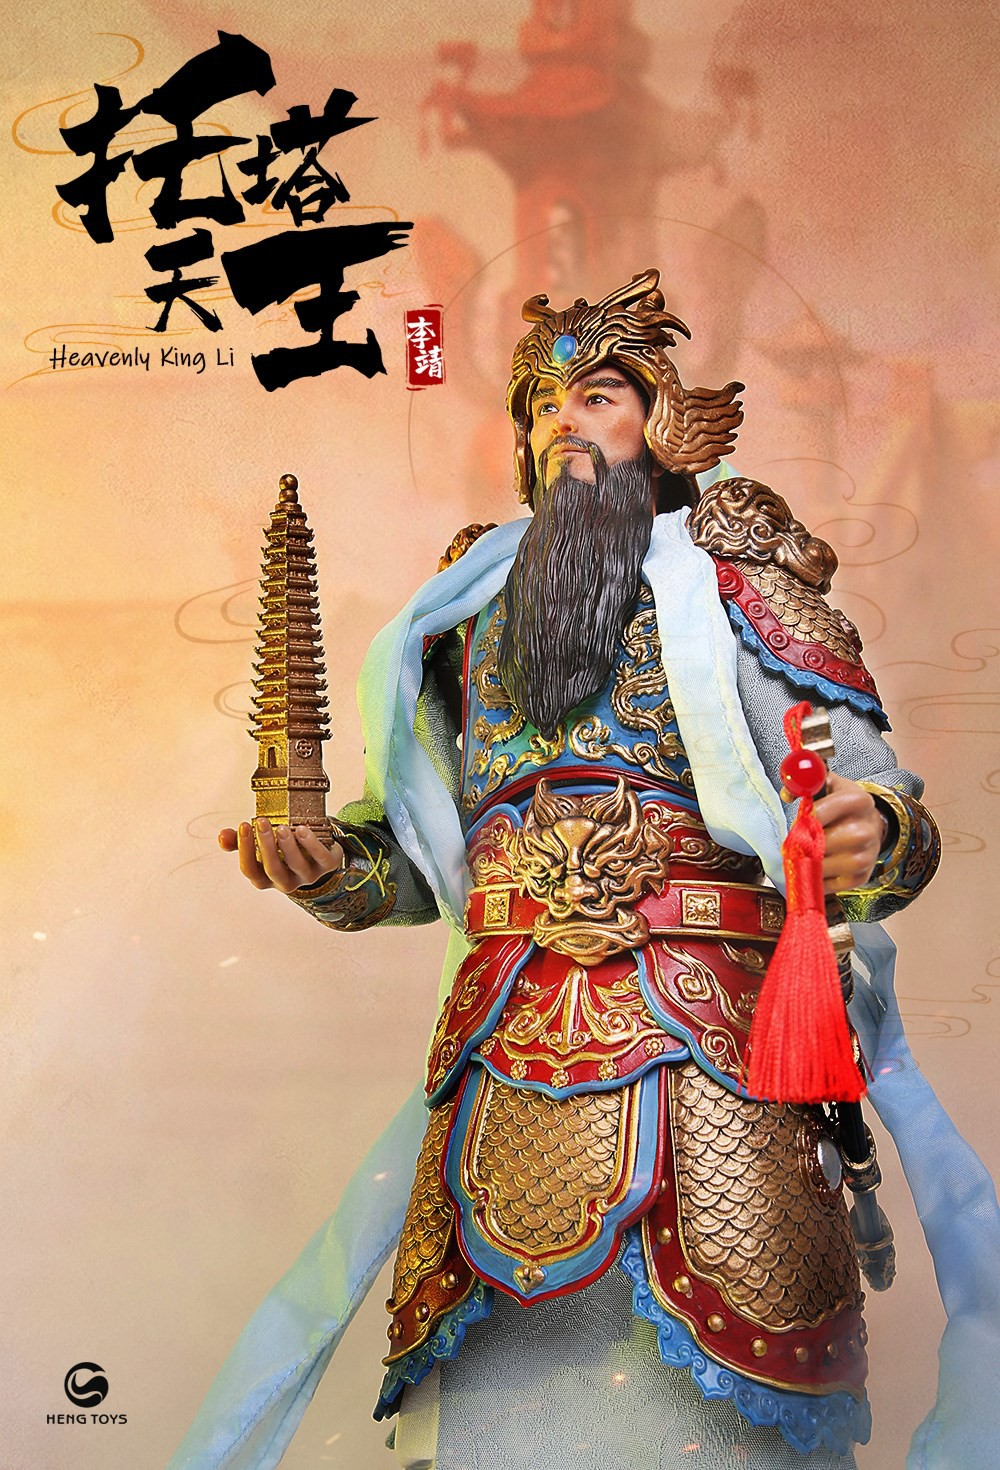 NEW PRODUCT: HENG TOYS: 1/6 Chinese Mythology Taoist Protector God Heavenly King Li, Li Tianwang action figure (PE-005) 14025910